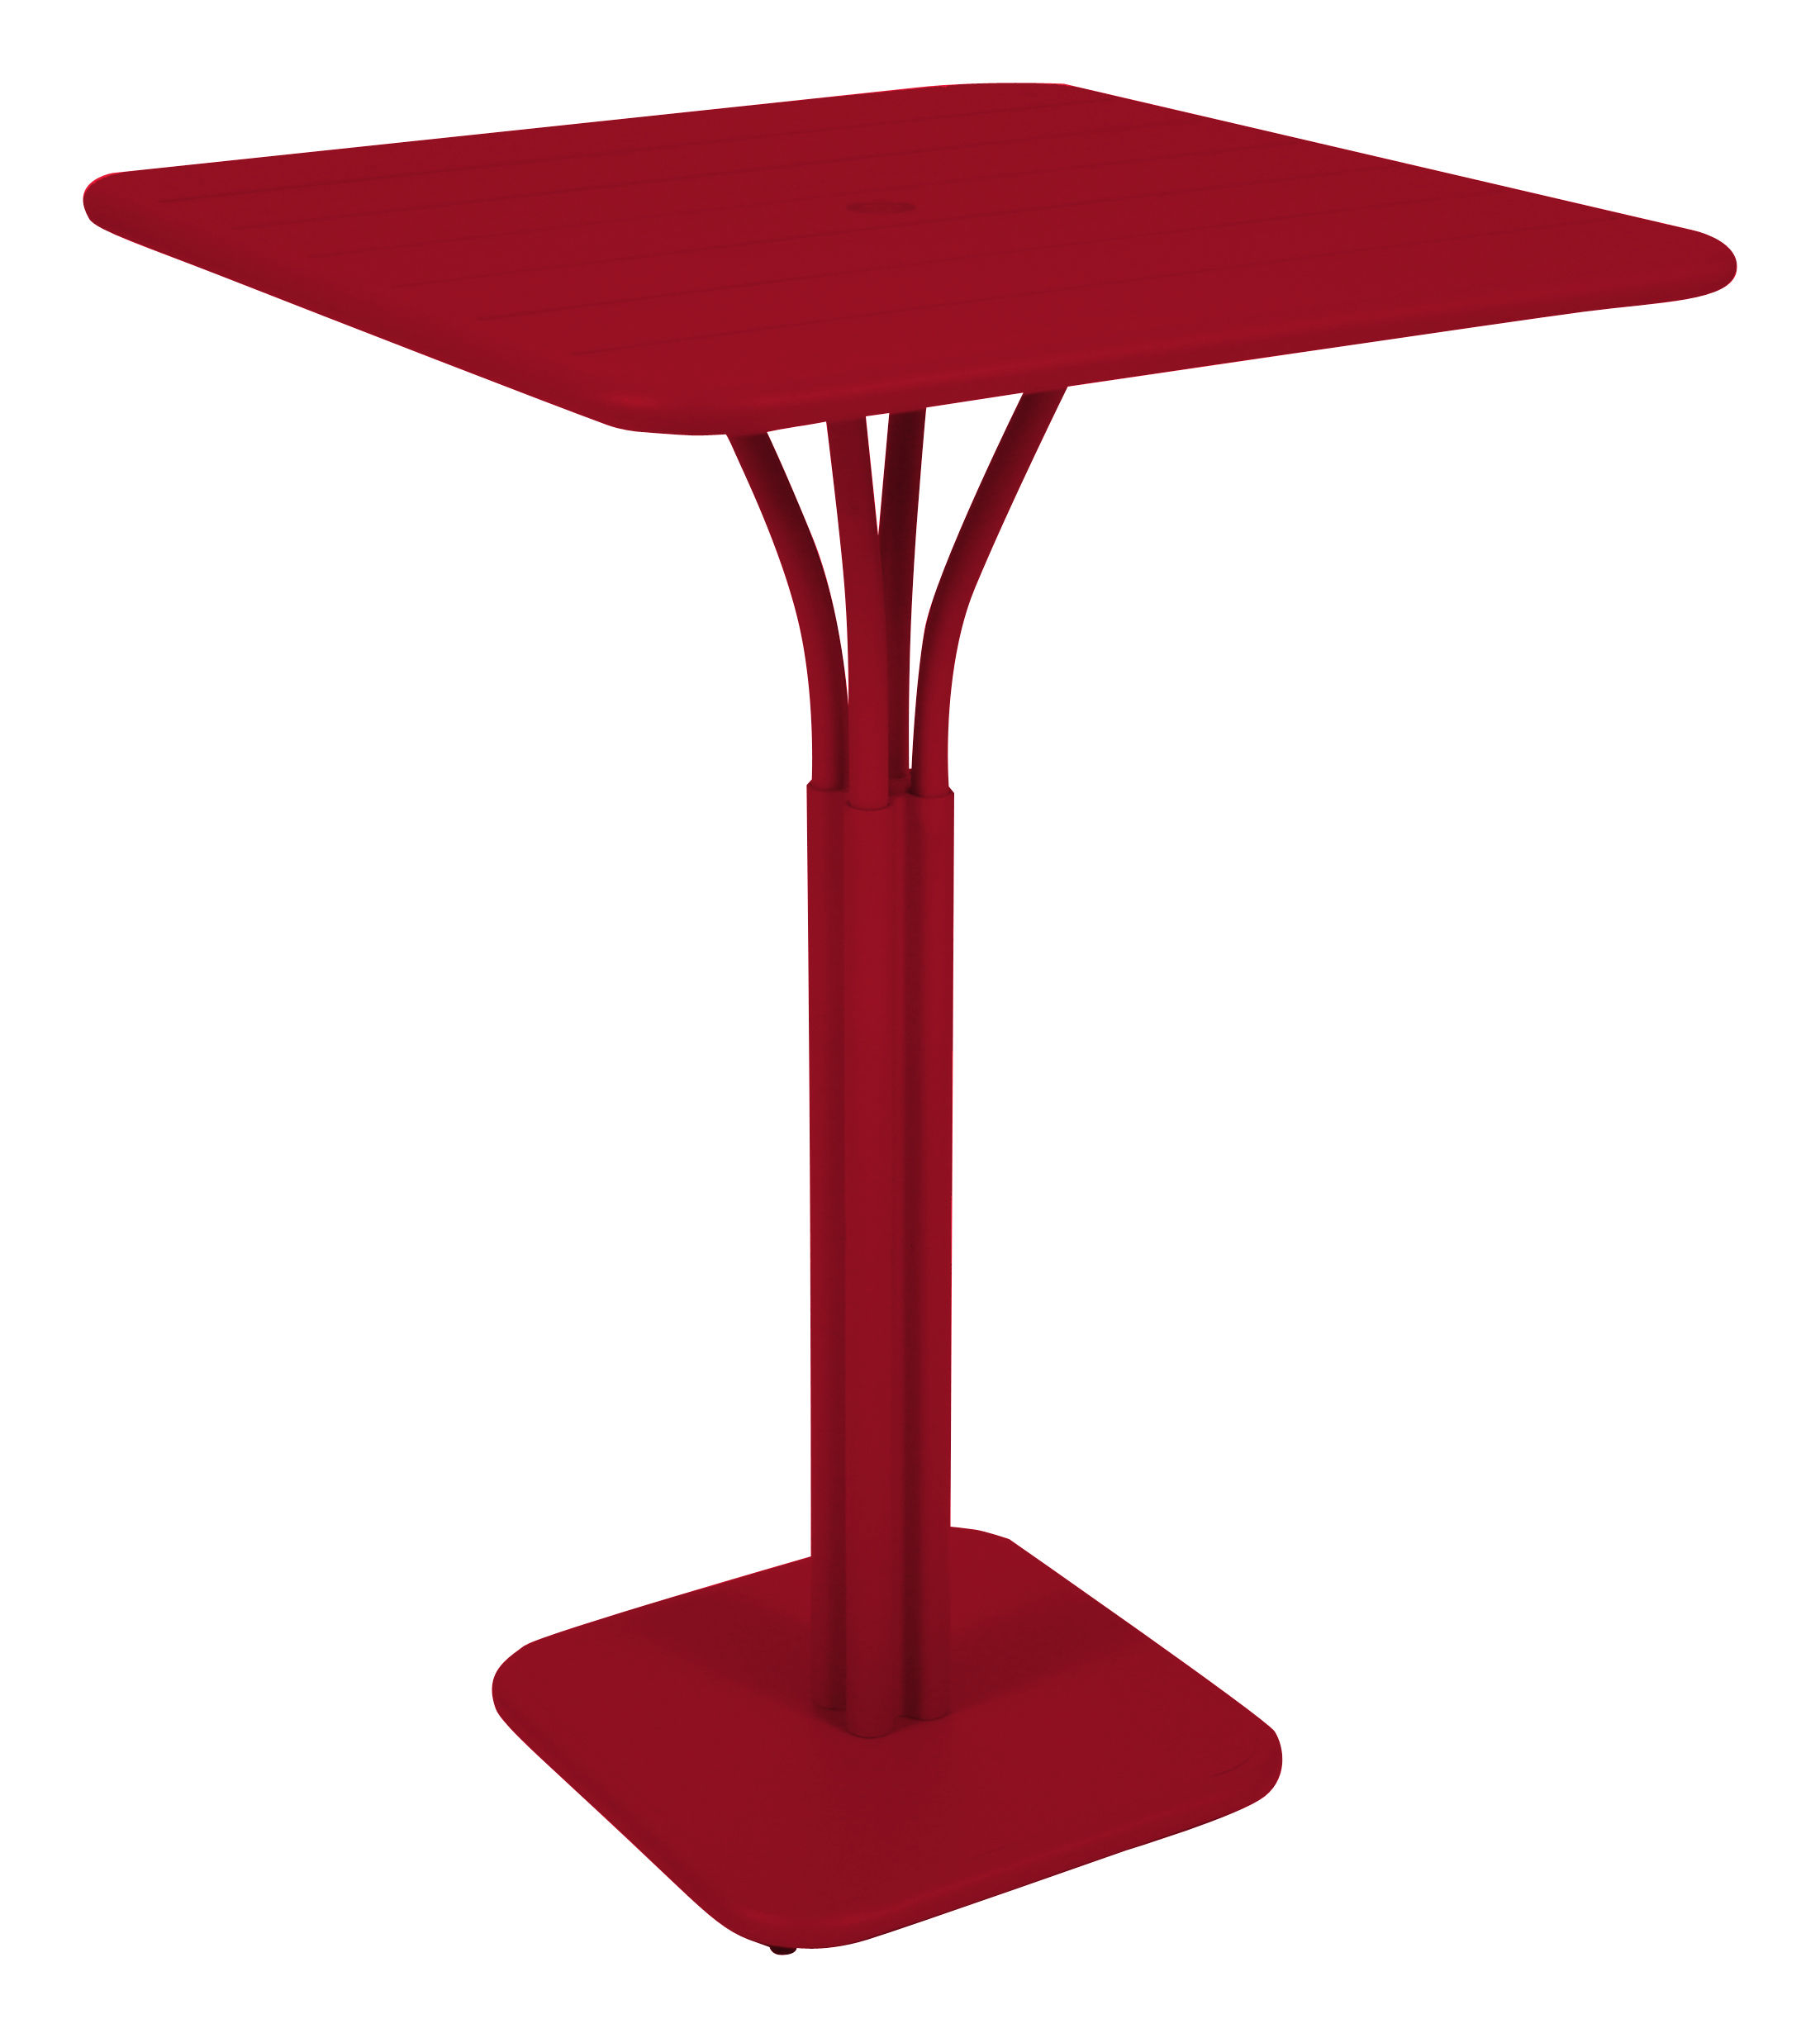 Furniture - High Tables - Luxembourg High table - 80 x 80 x H 105 cm by Fermob - Poppy - Lacquered aluminium